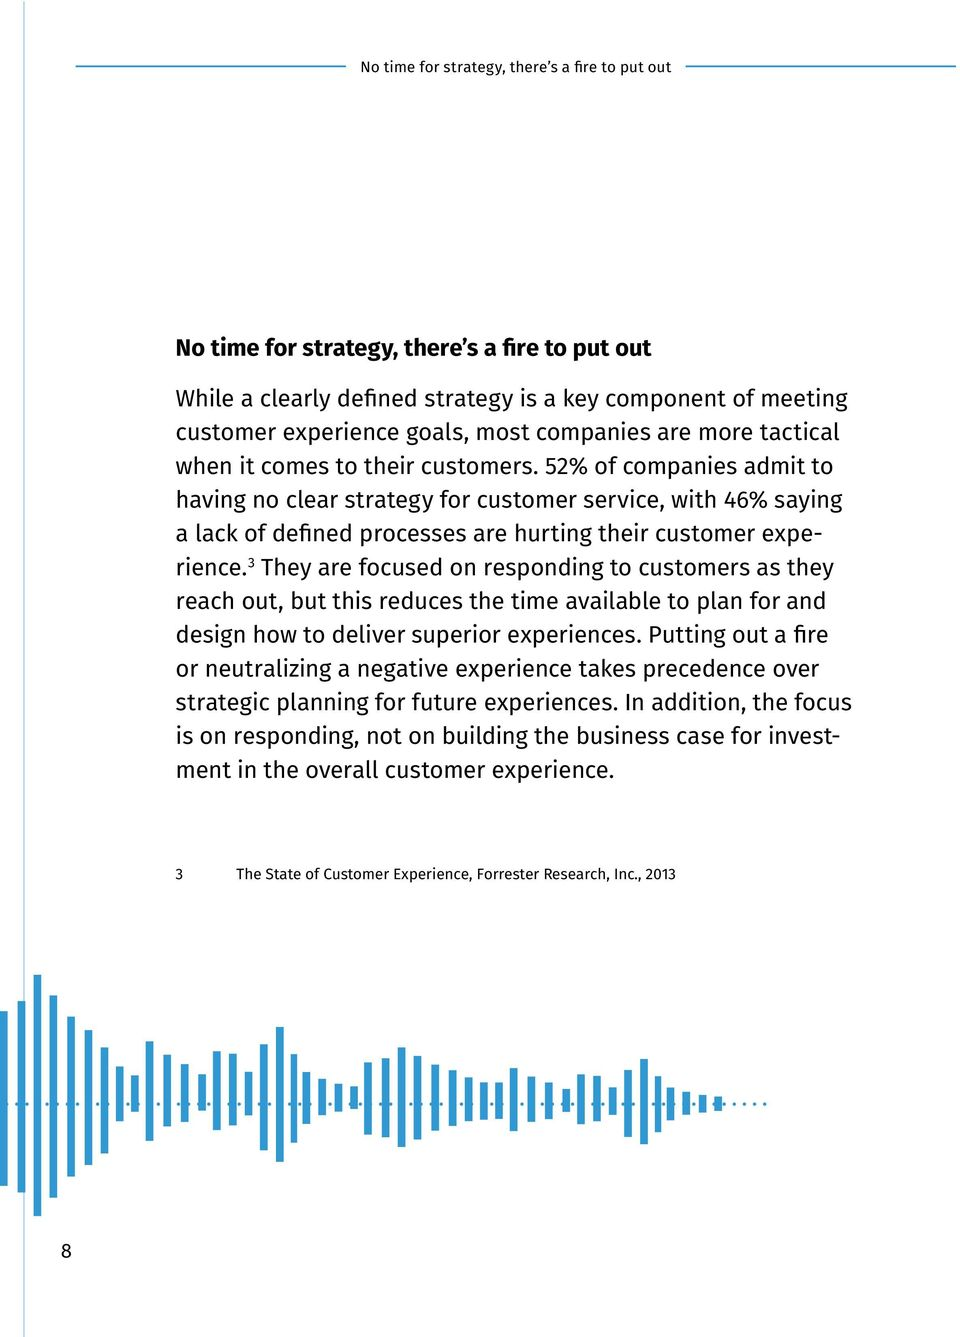 52% of companies admit to having no clear strategy for customer service, with 46% saying a lack of defined processes are hurting their customer experience.